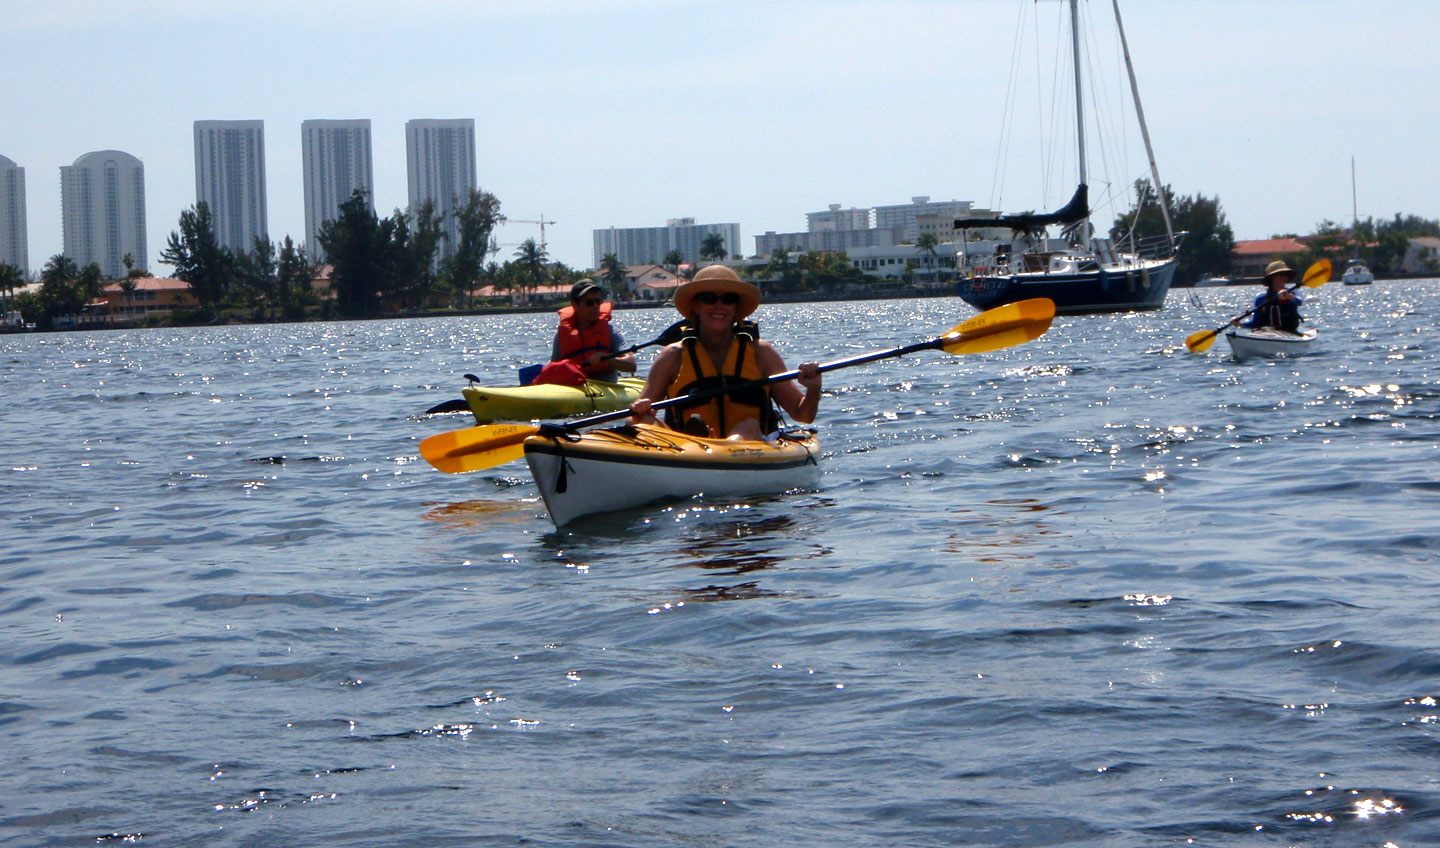 Kayaking at Oleta Park